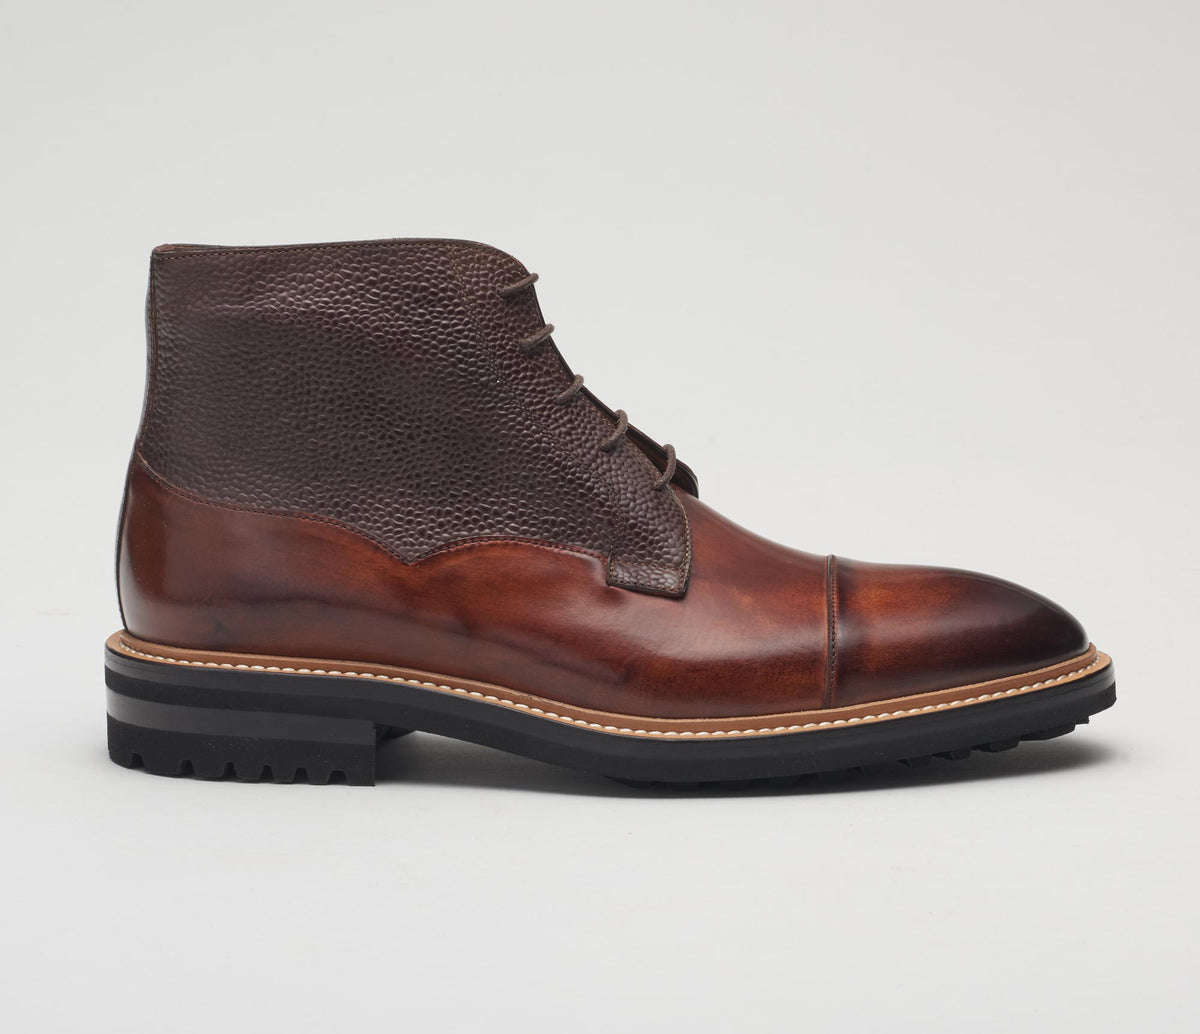 GB346 Calf/Scotch Grain Tan/Fondente